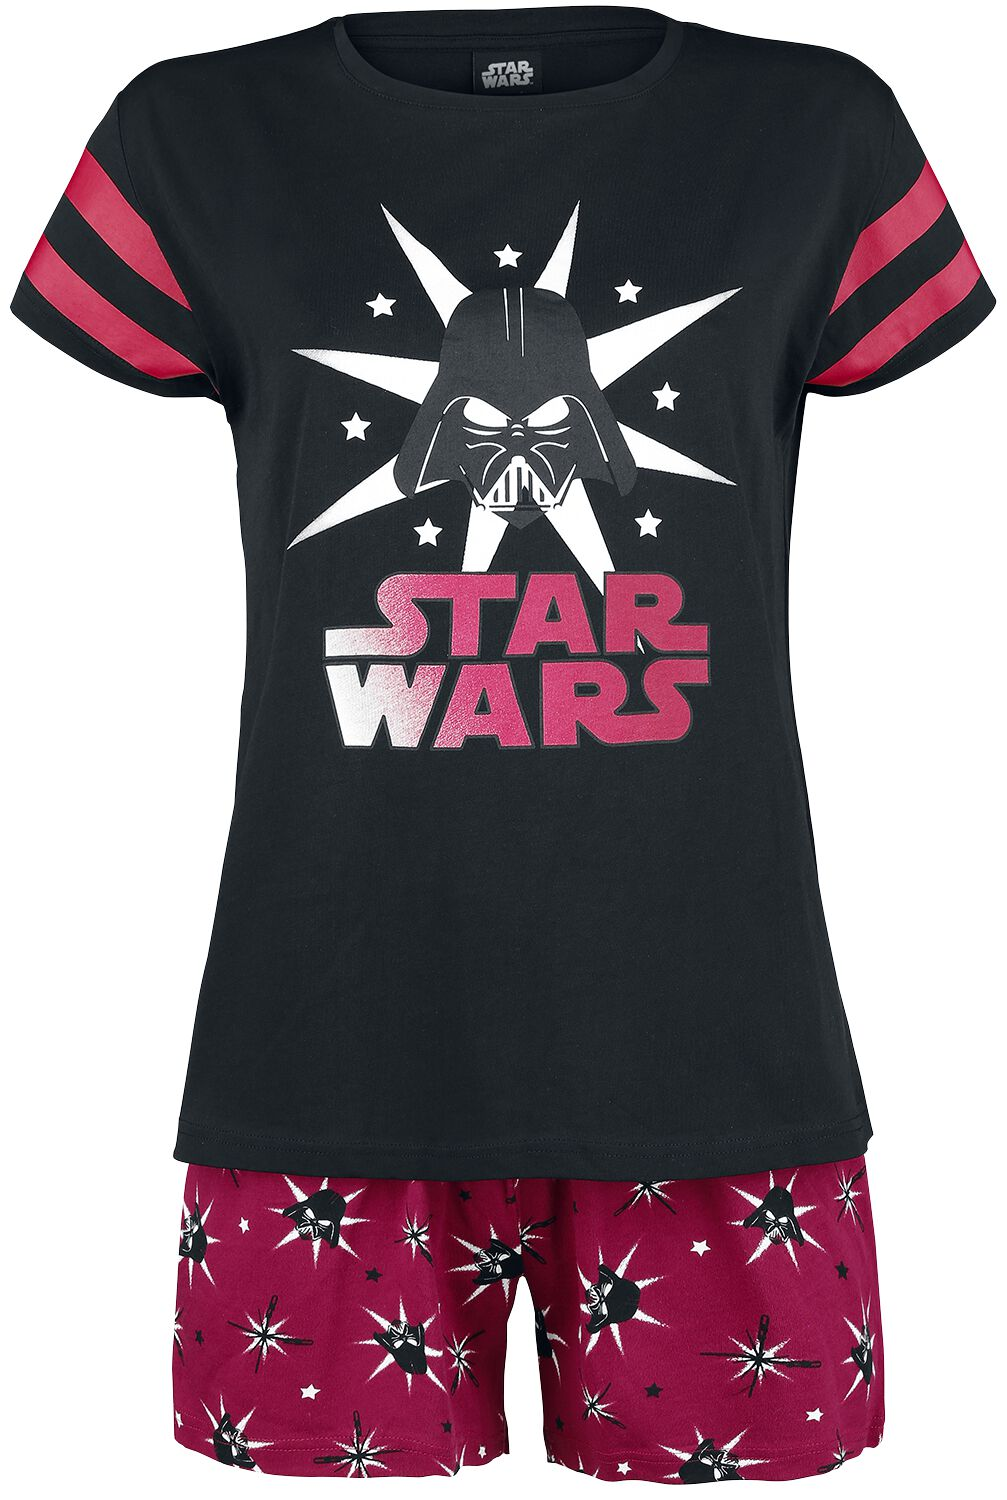 Image of   Star Wars Darth Vader - Stars Pyjamas sort-rød